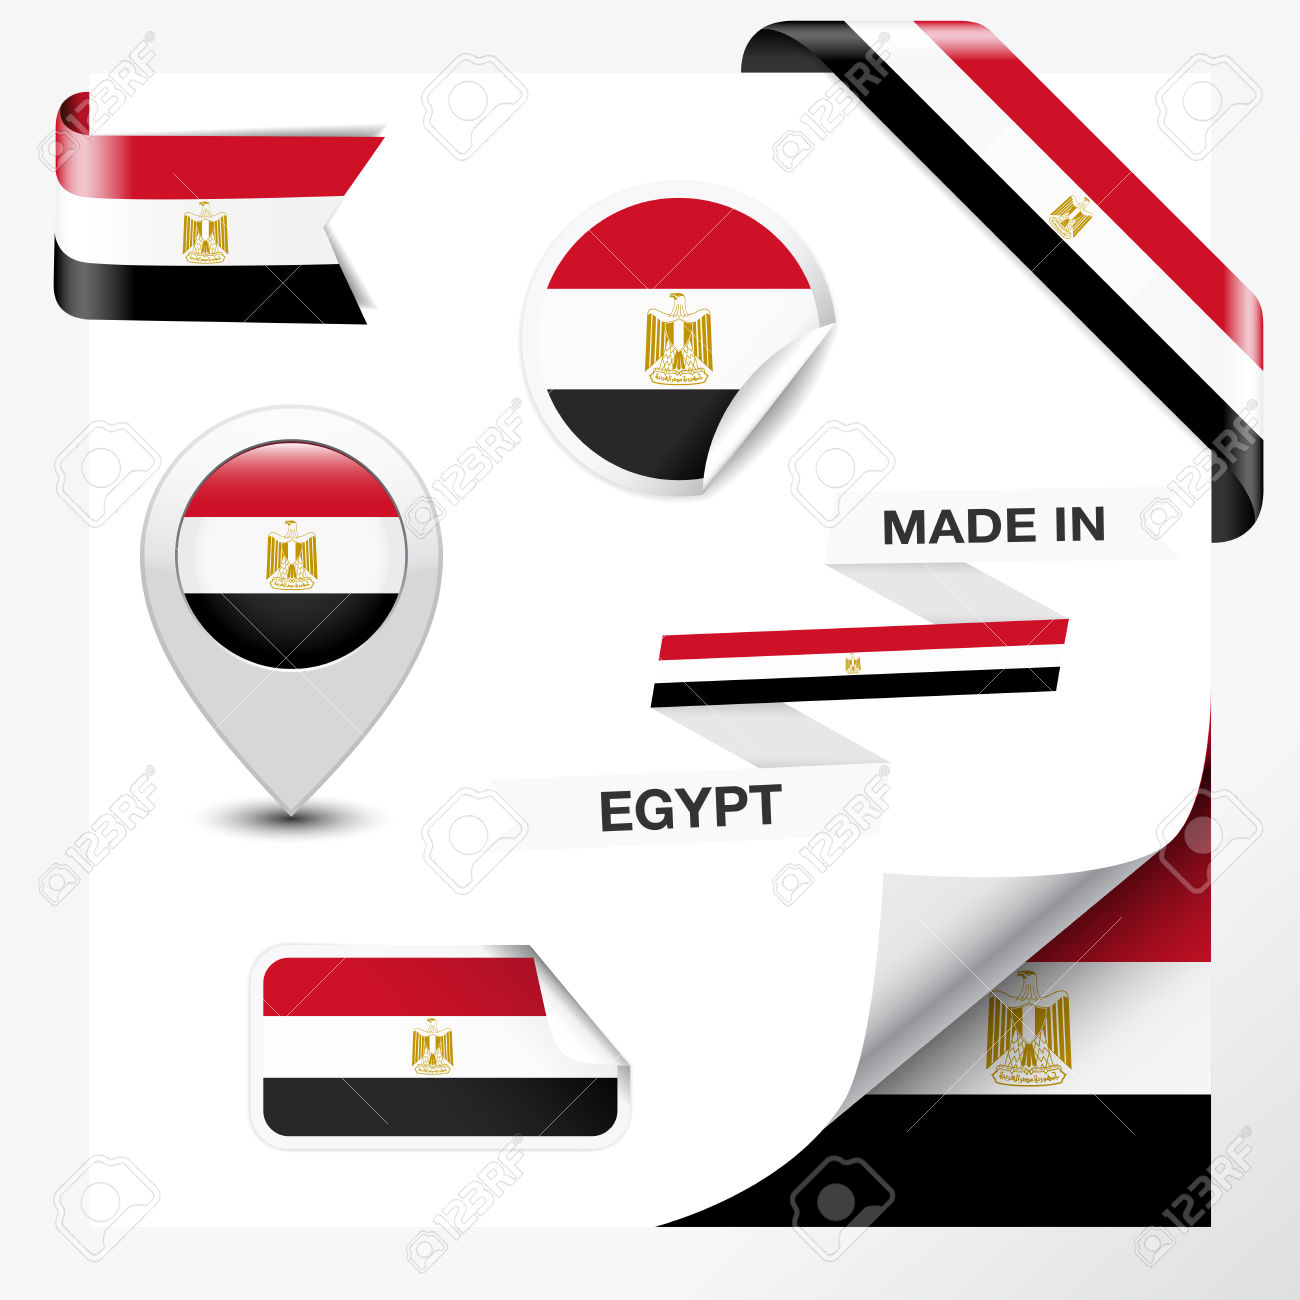 26592255-Made-in-Egypt-collection-of-ribbon-label-stickers-pointer-badge-icon-and-page-curl-with-Egyptian-fla-Stock-Vector-1